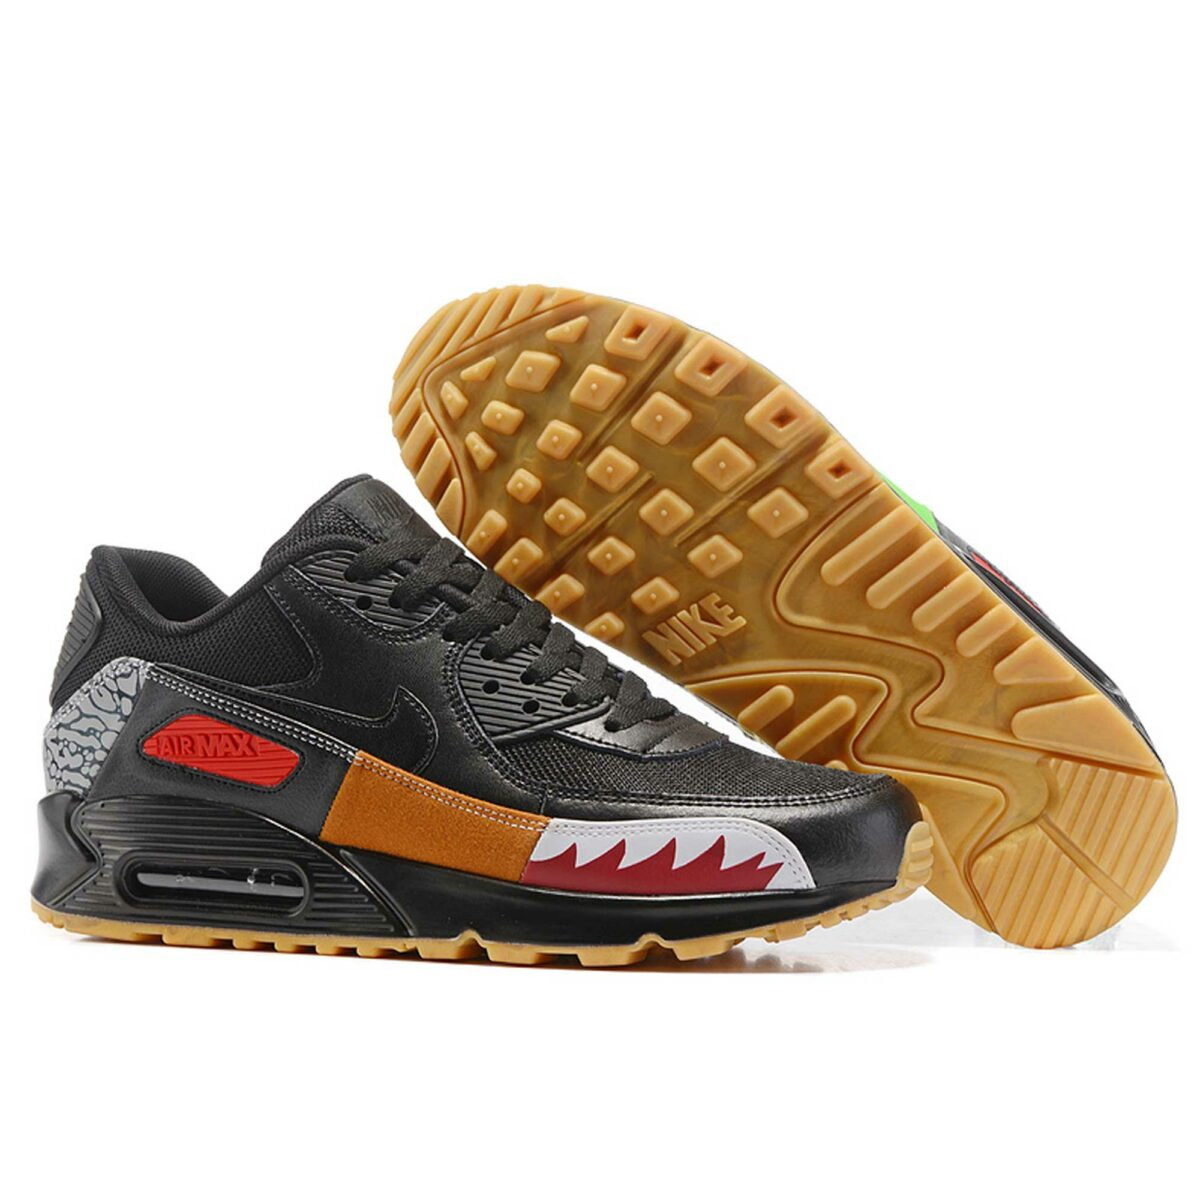 nike air max 90 premium QS atmos safari black multi-color купить